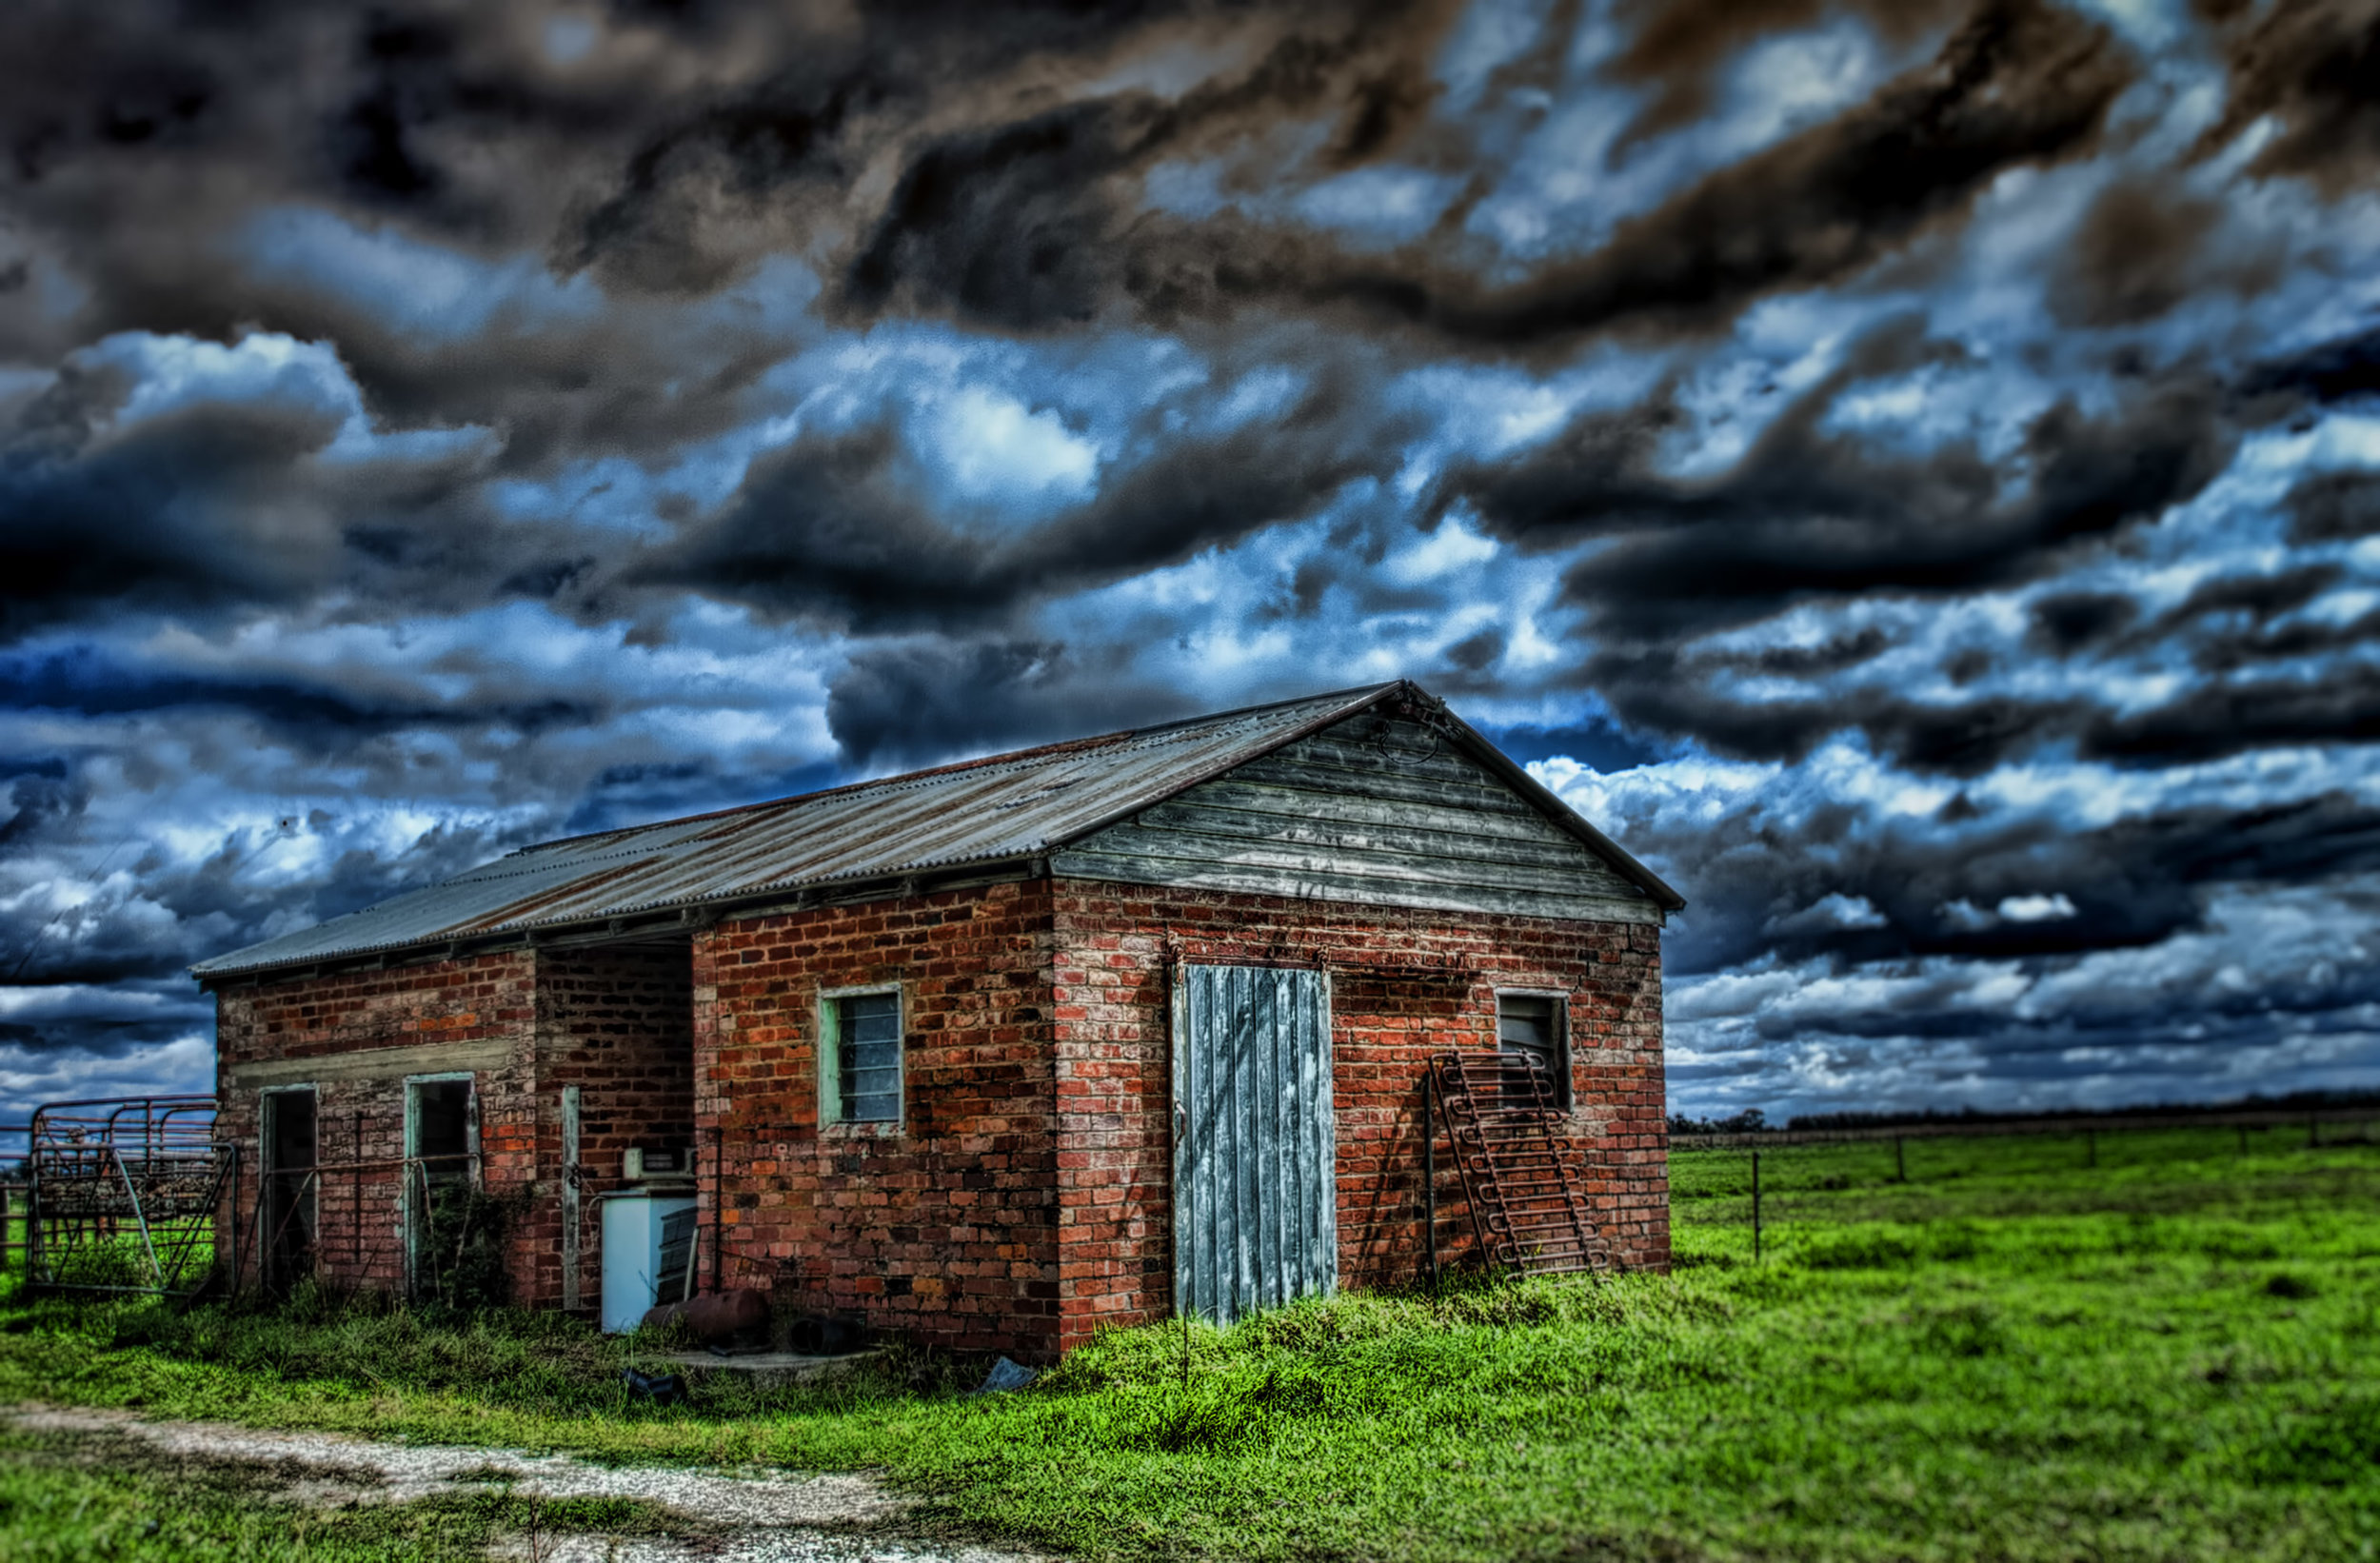 Old milking shed on cloudy day. Image by Indigo Skies Photography